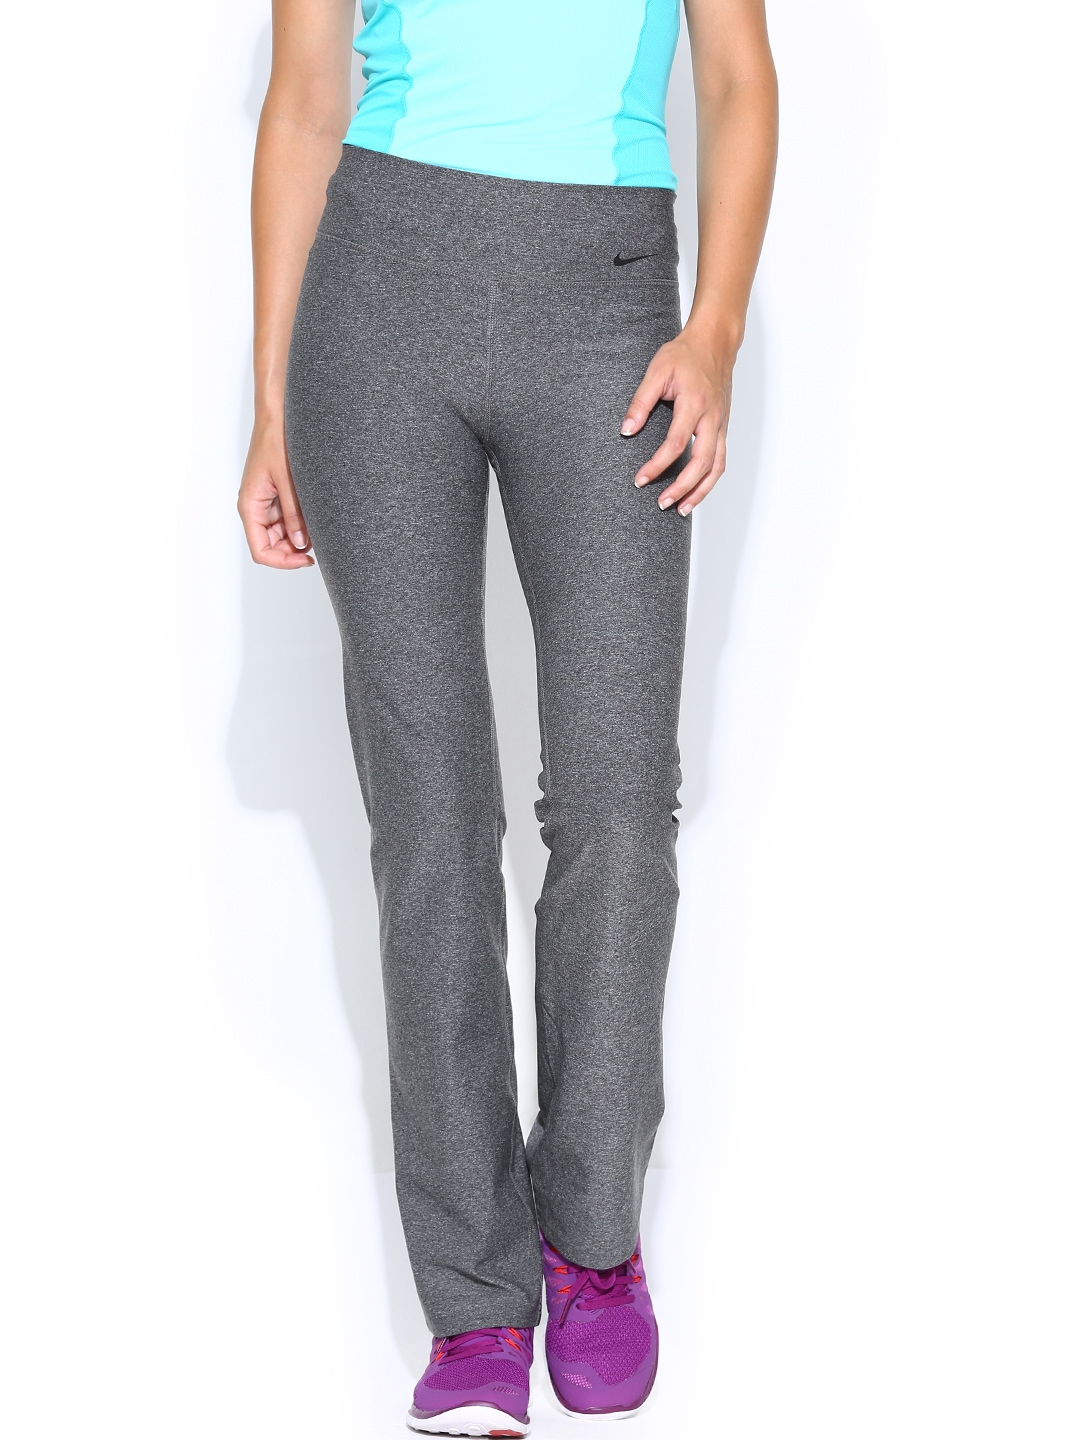 Simple Nike Comfy And  Cotton Blend In A Slimfitting Profile For Warmth And A Streamlined Look StyleColor 718823091  Womens Size Small  NEW With Tags  No Trades 100% Authentic Nike Pants Track Pants &amp Joggers Nike Dry Fit